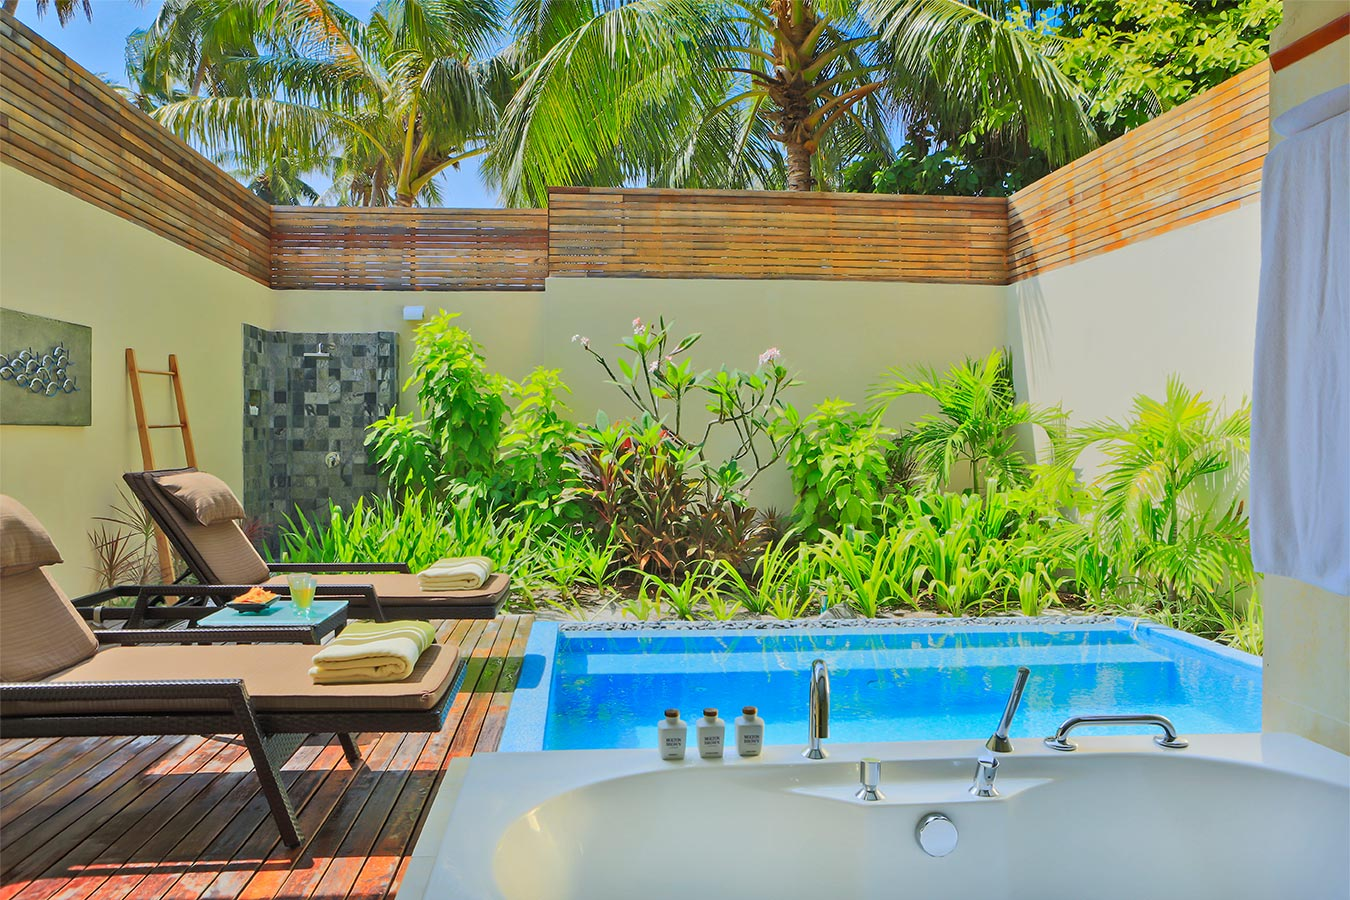 Kurumba Maldives - Garden Pool Villa - Private Pool Image - Maldives Resort